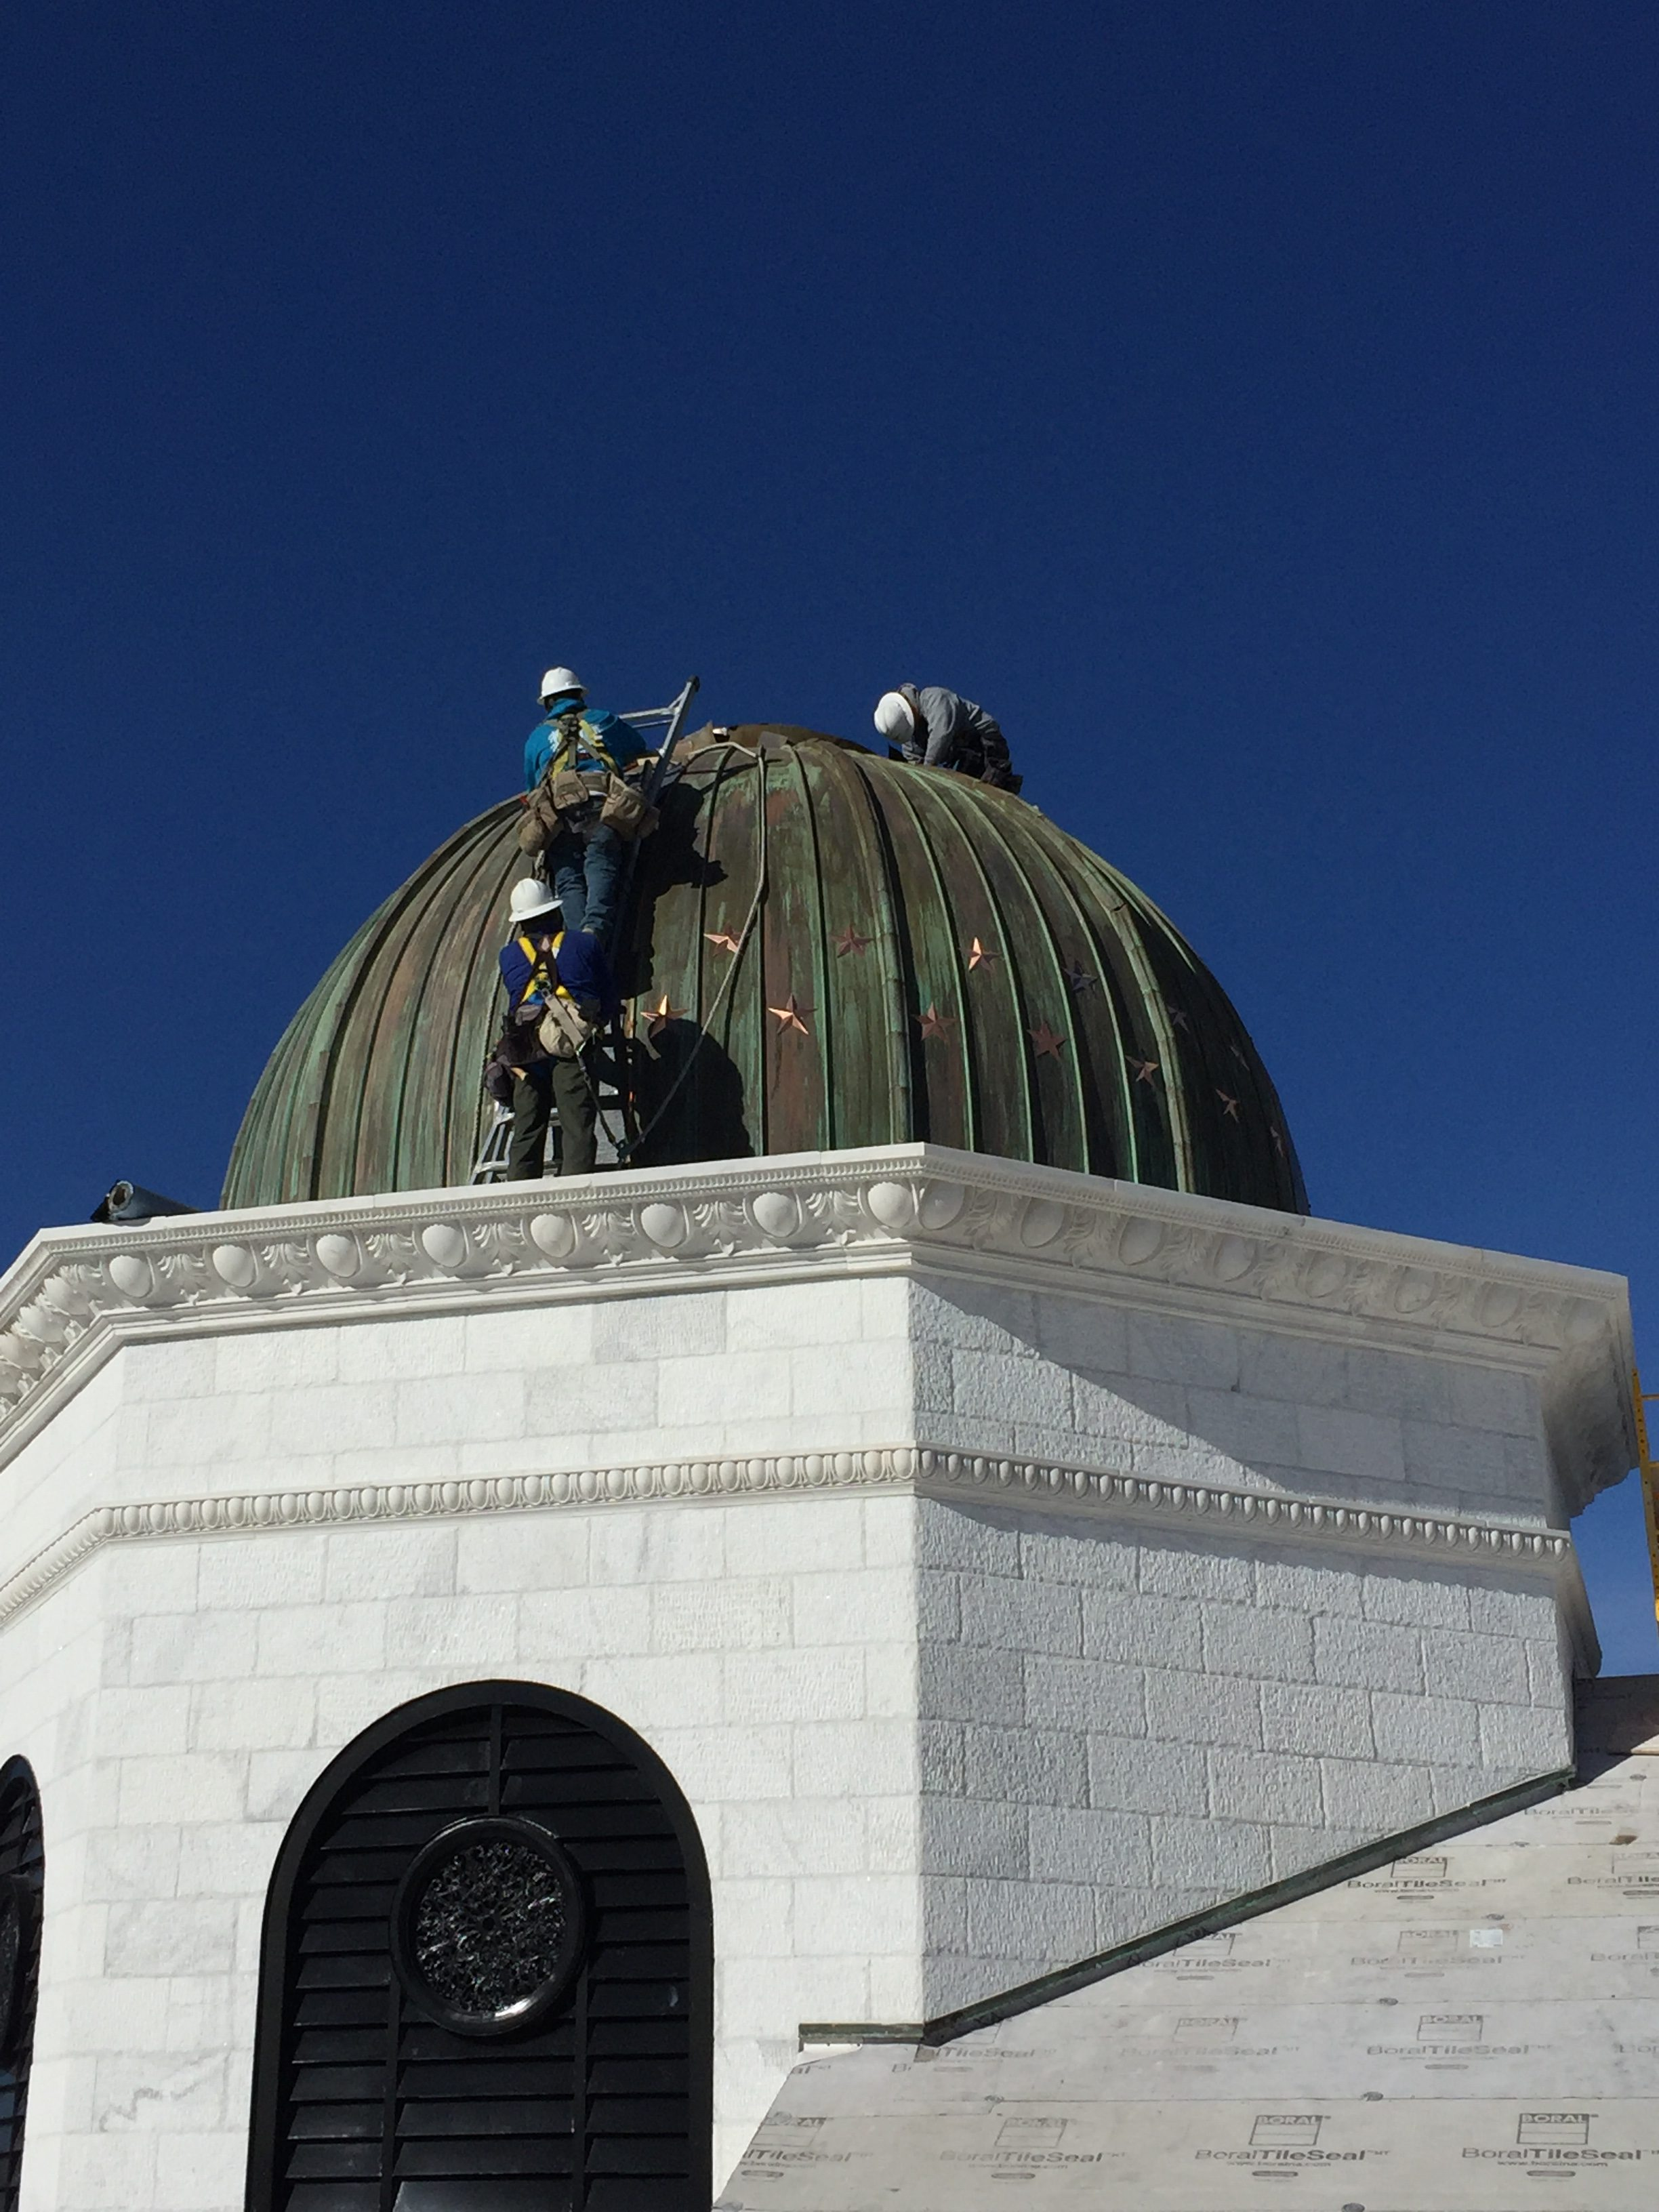 three roofers completing work on top of a copper cupola dome on the roof of a new building